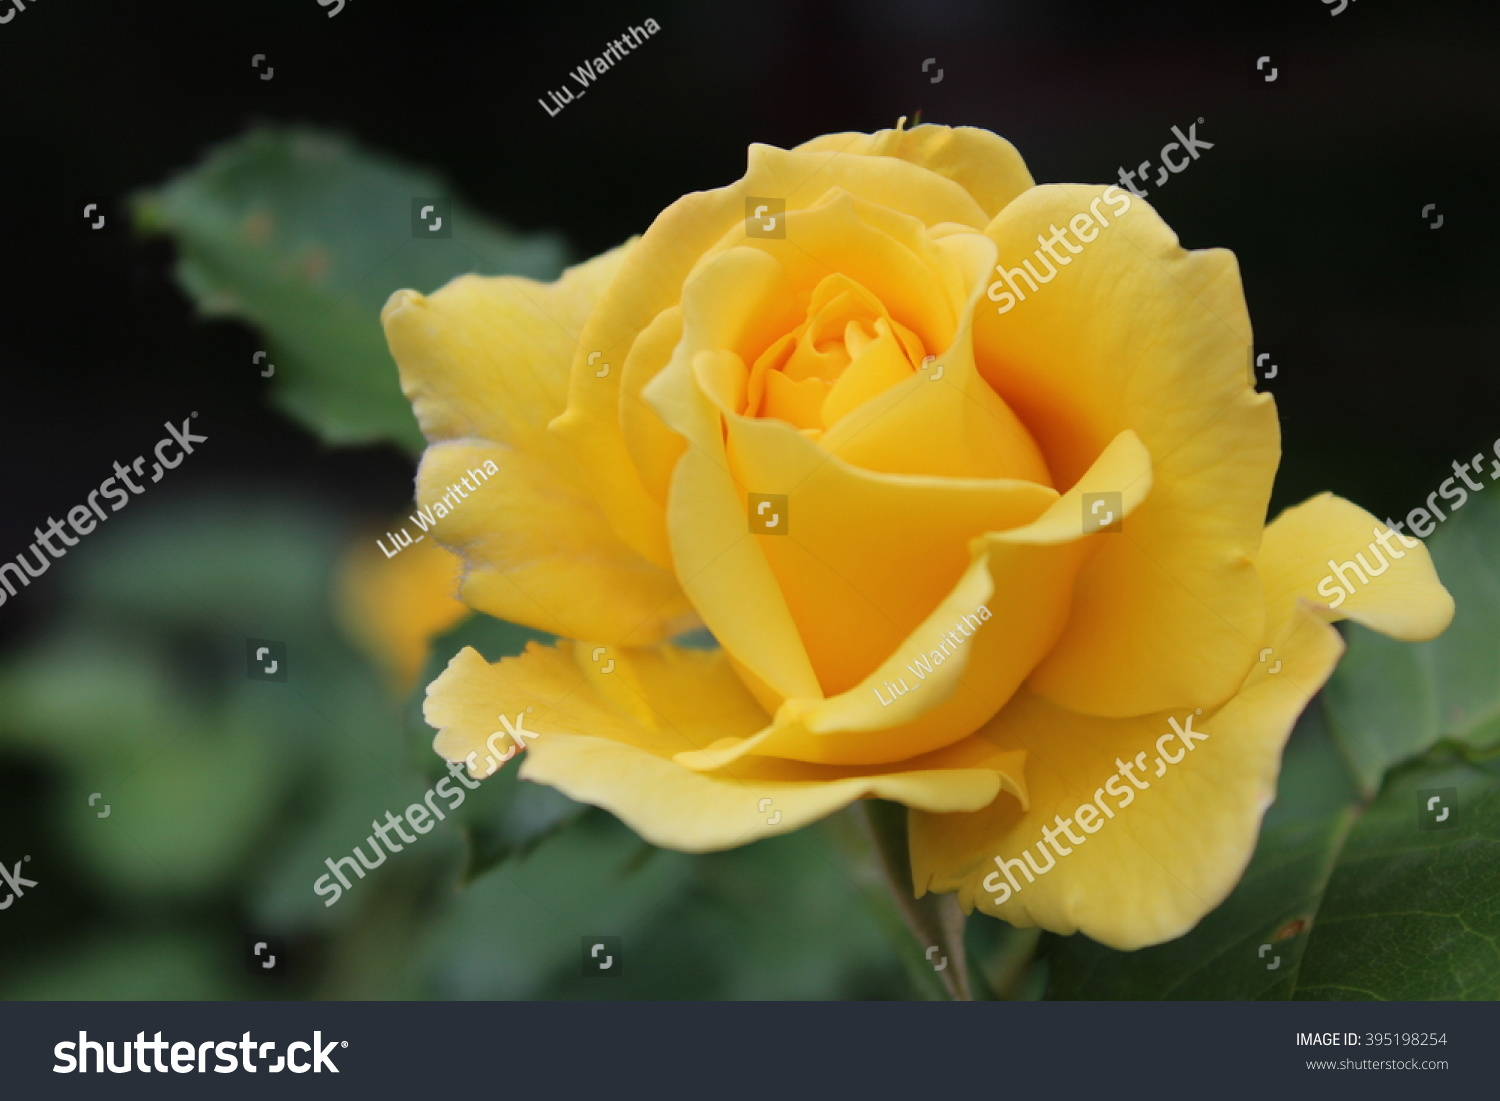 Royalty Free Yellow Roses Meaning Bright Cheerful 395198254 Stock